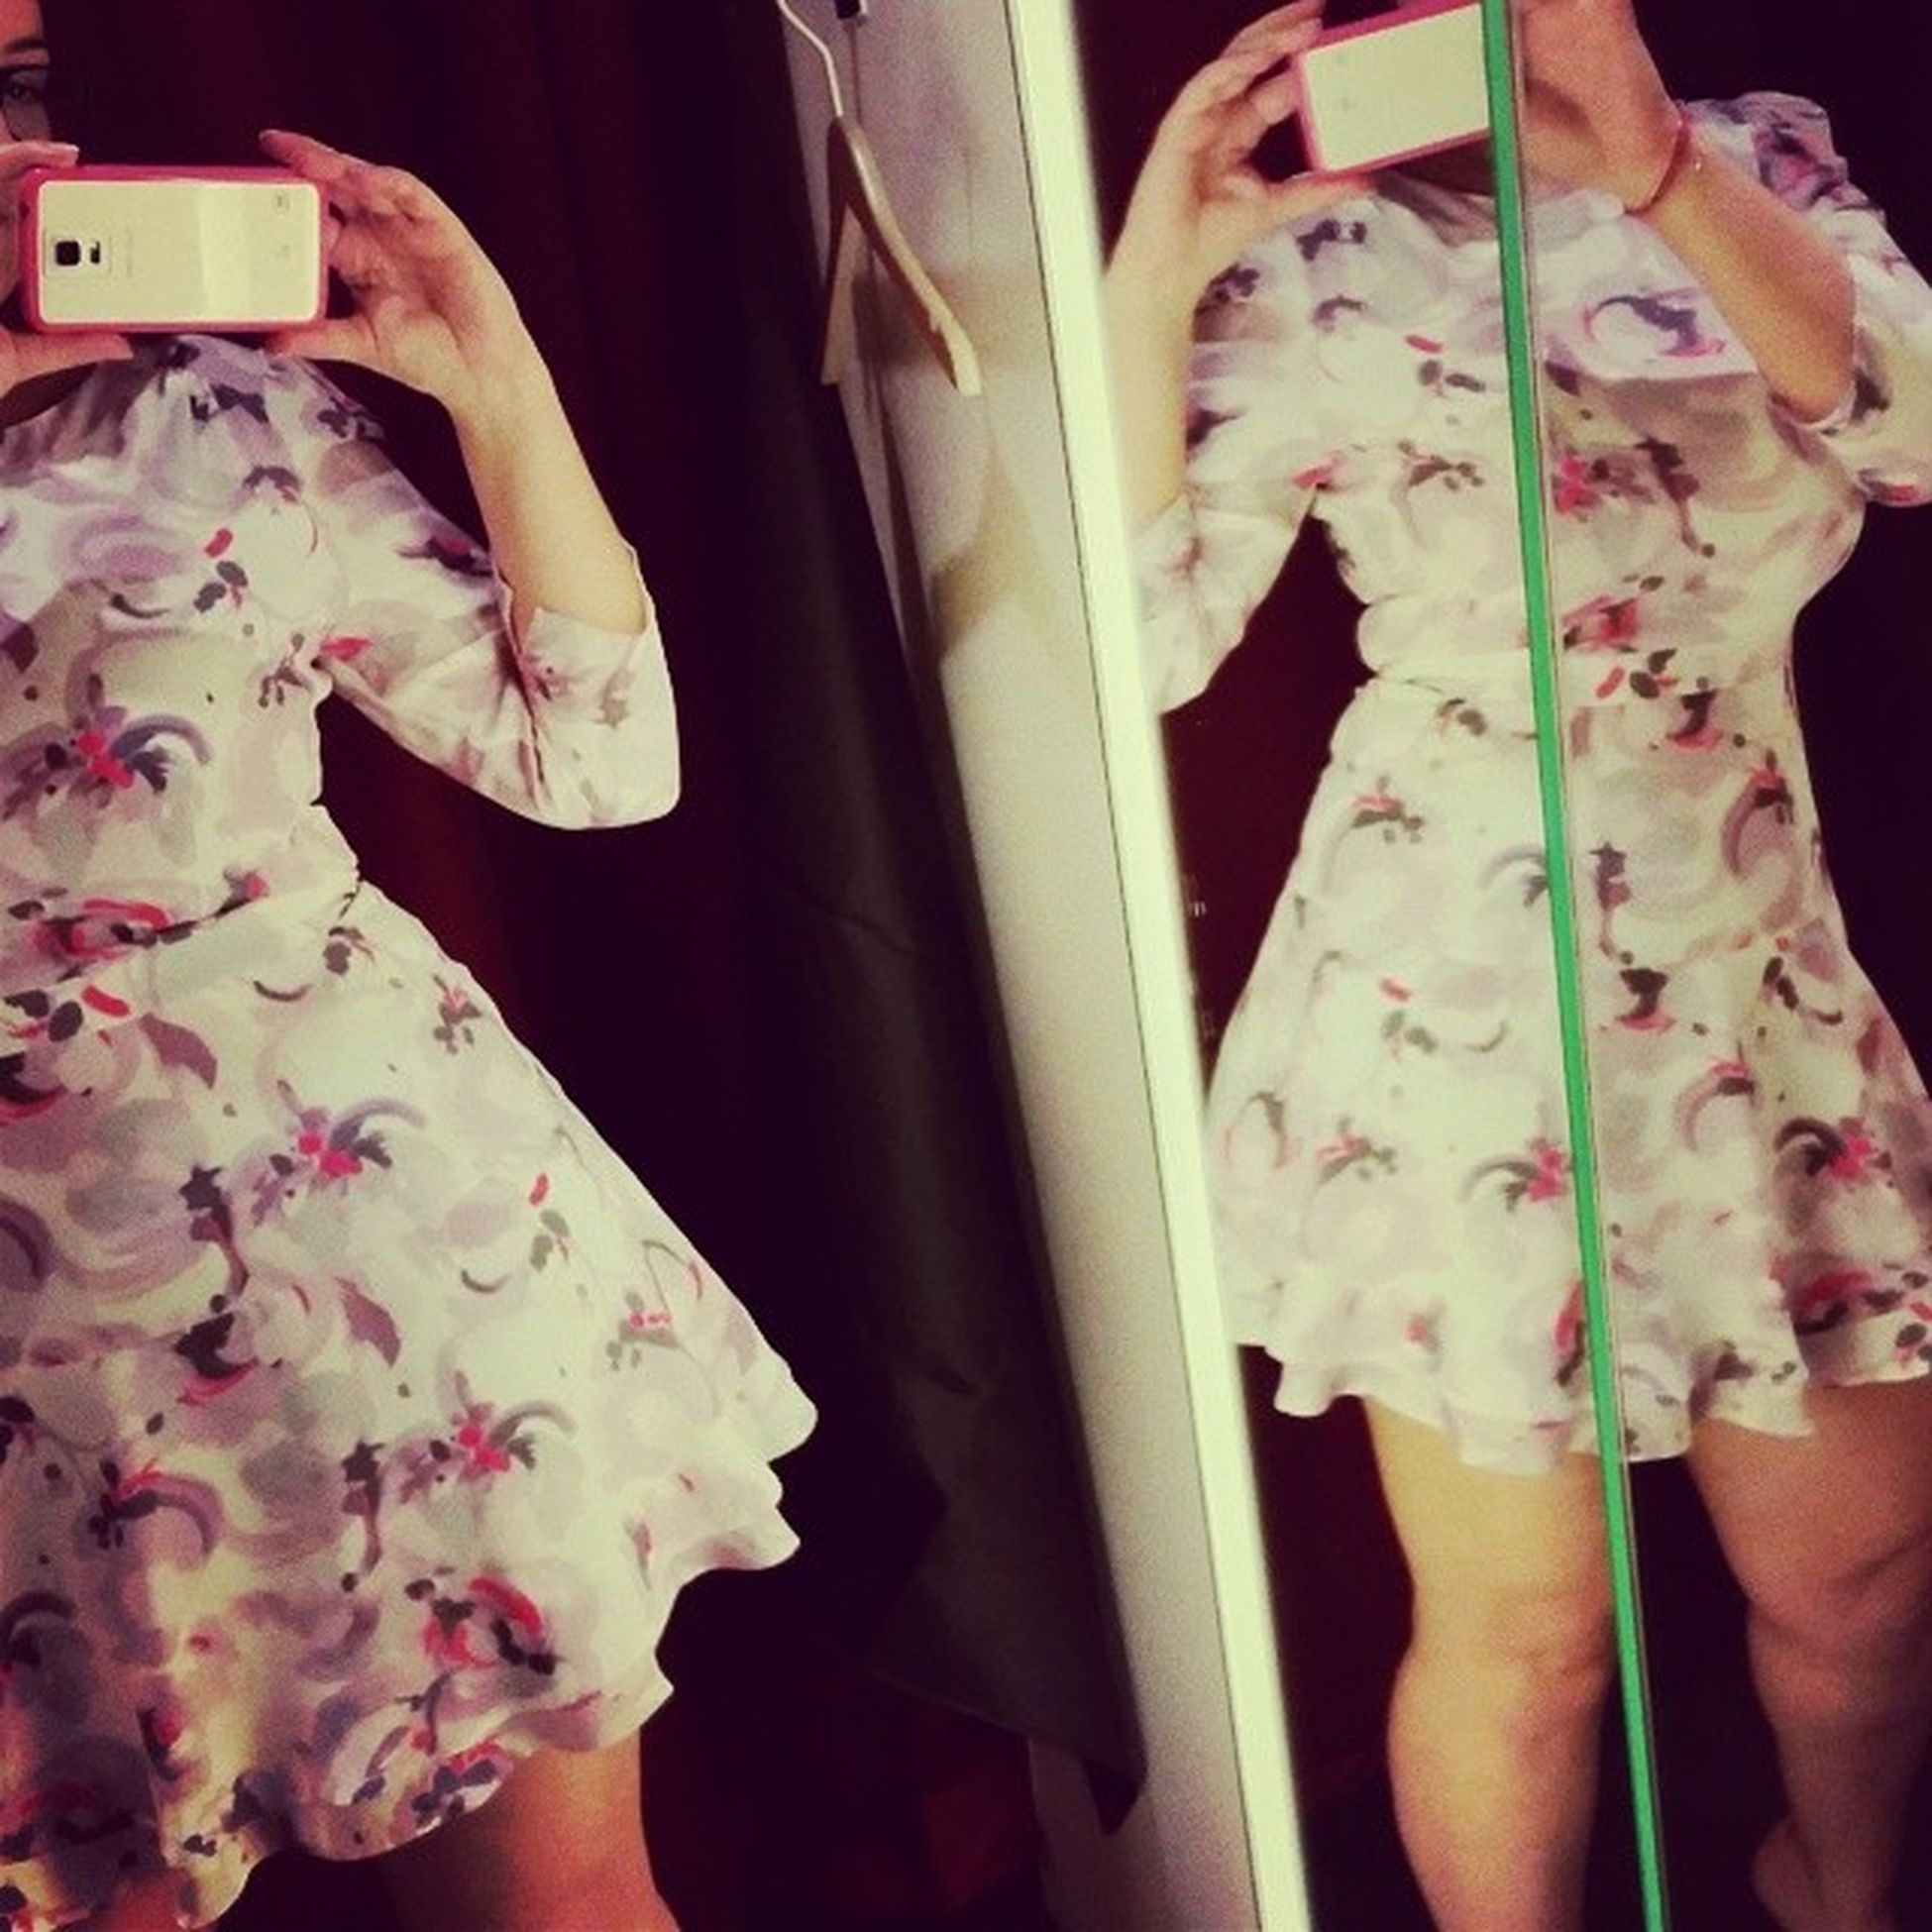 Dressing room delight Reis Midriff Mcc  Dress shopping ootd outfitoftheday lookoftheday fashion fashiongram style love beautiful wiwt whatiwore ootdshare outfit clothesmylook fashionista instastyle instafashion outfitpost fashionpost todaysoutfit fashiondiaries